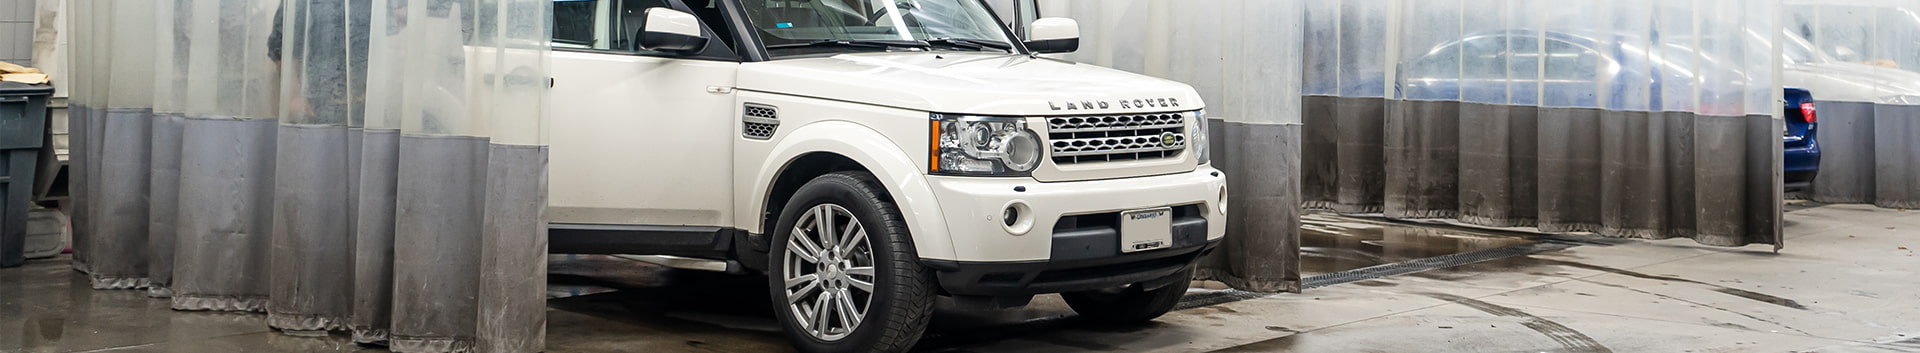 Front 3/4 exterior view of a Land Rover vehicle in the car wash